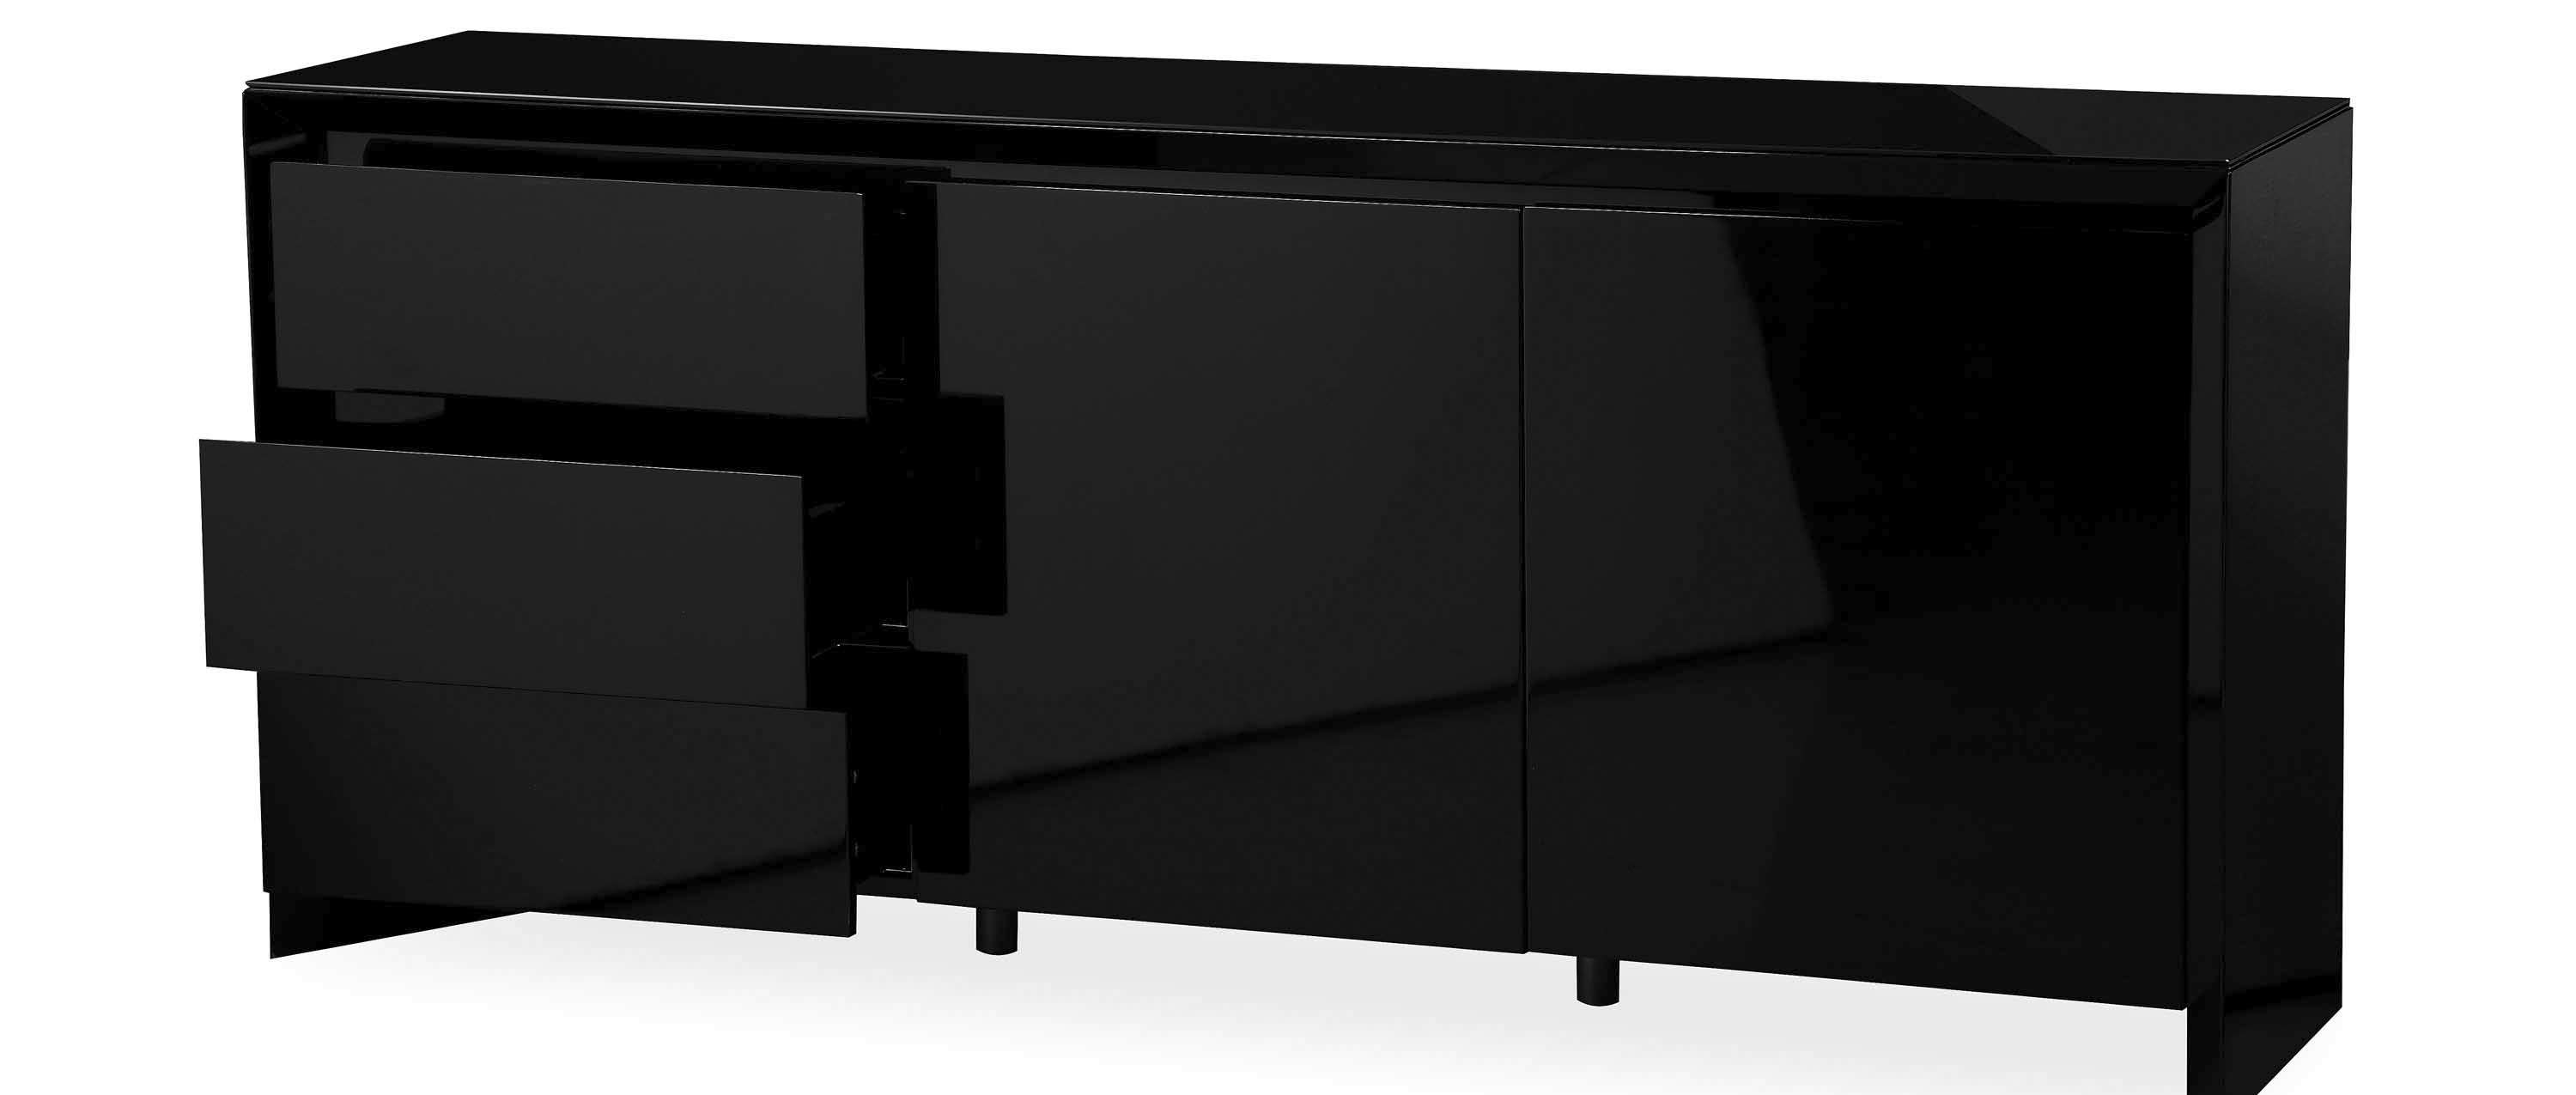 Soho – Extra Large Sideboard – Black High Gloss Pertaining To Black Sideboards (View 6 of 20)